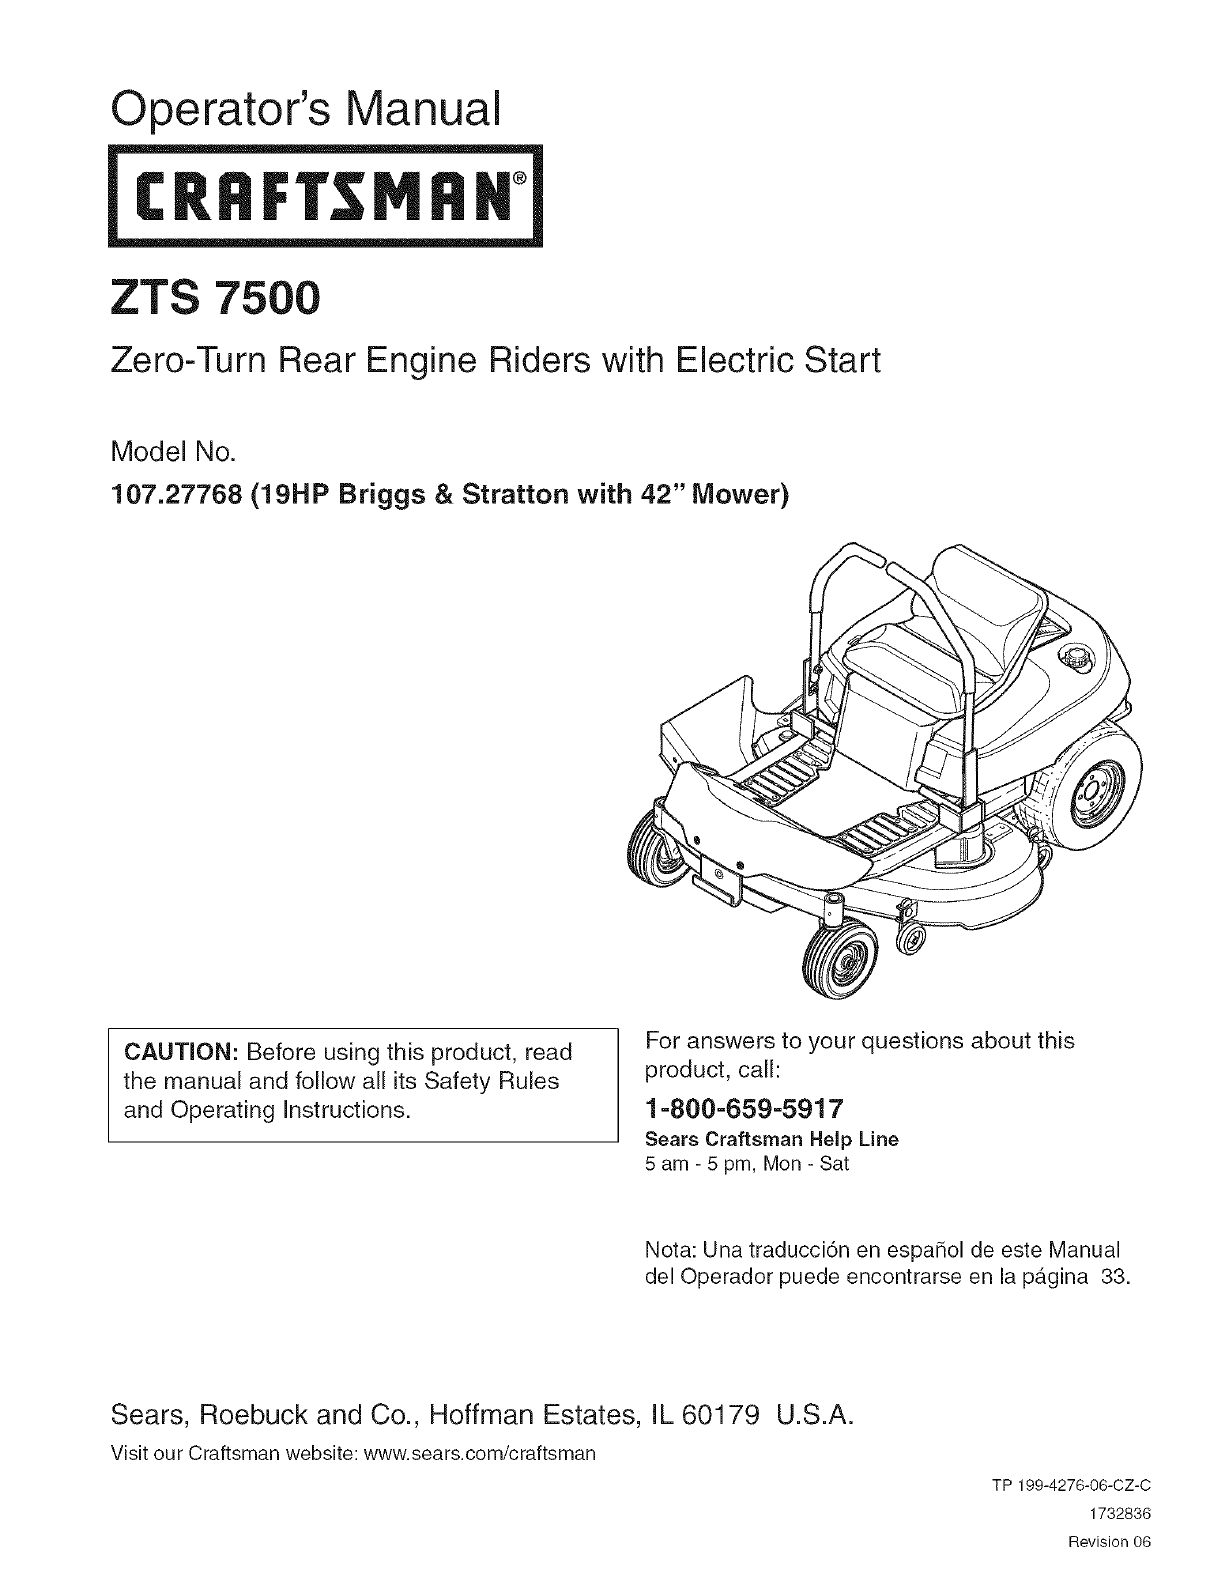 f031524f 081a 42c1 aab5 328d055ebef1 bg1 craftsman lawn mower 107 27768 user guide manualsonline com  at gsmx.co